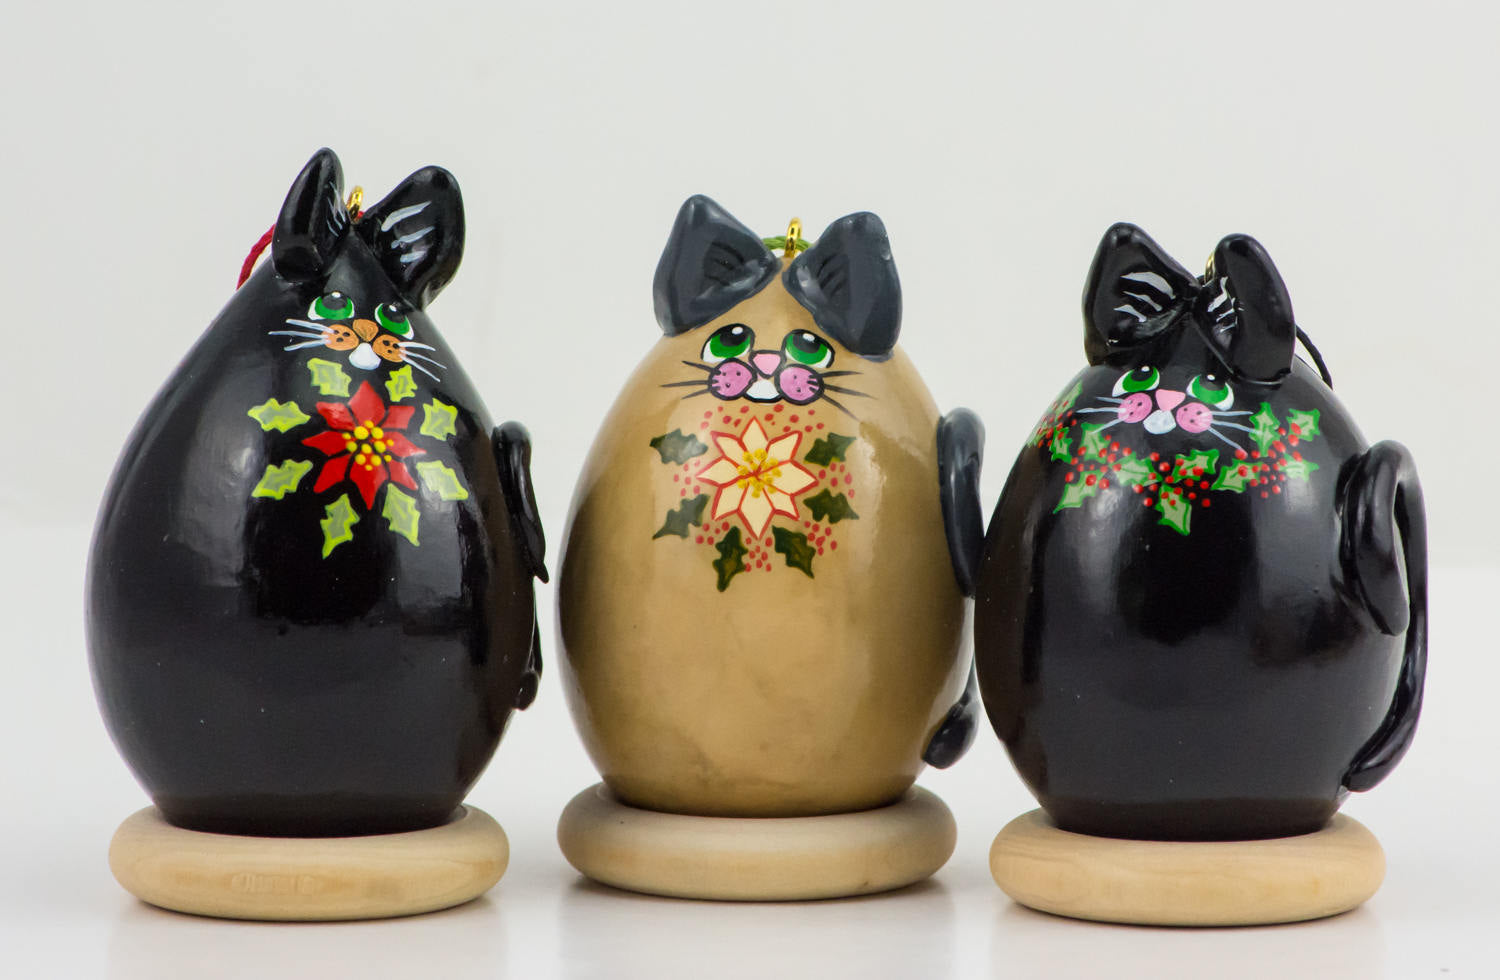 Kitty Cat Gourd Ornament Trio Holly and Poinsettia design - Cat Lover Christmas Gift